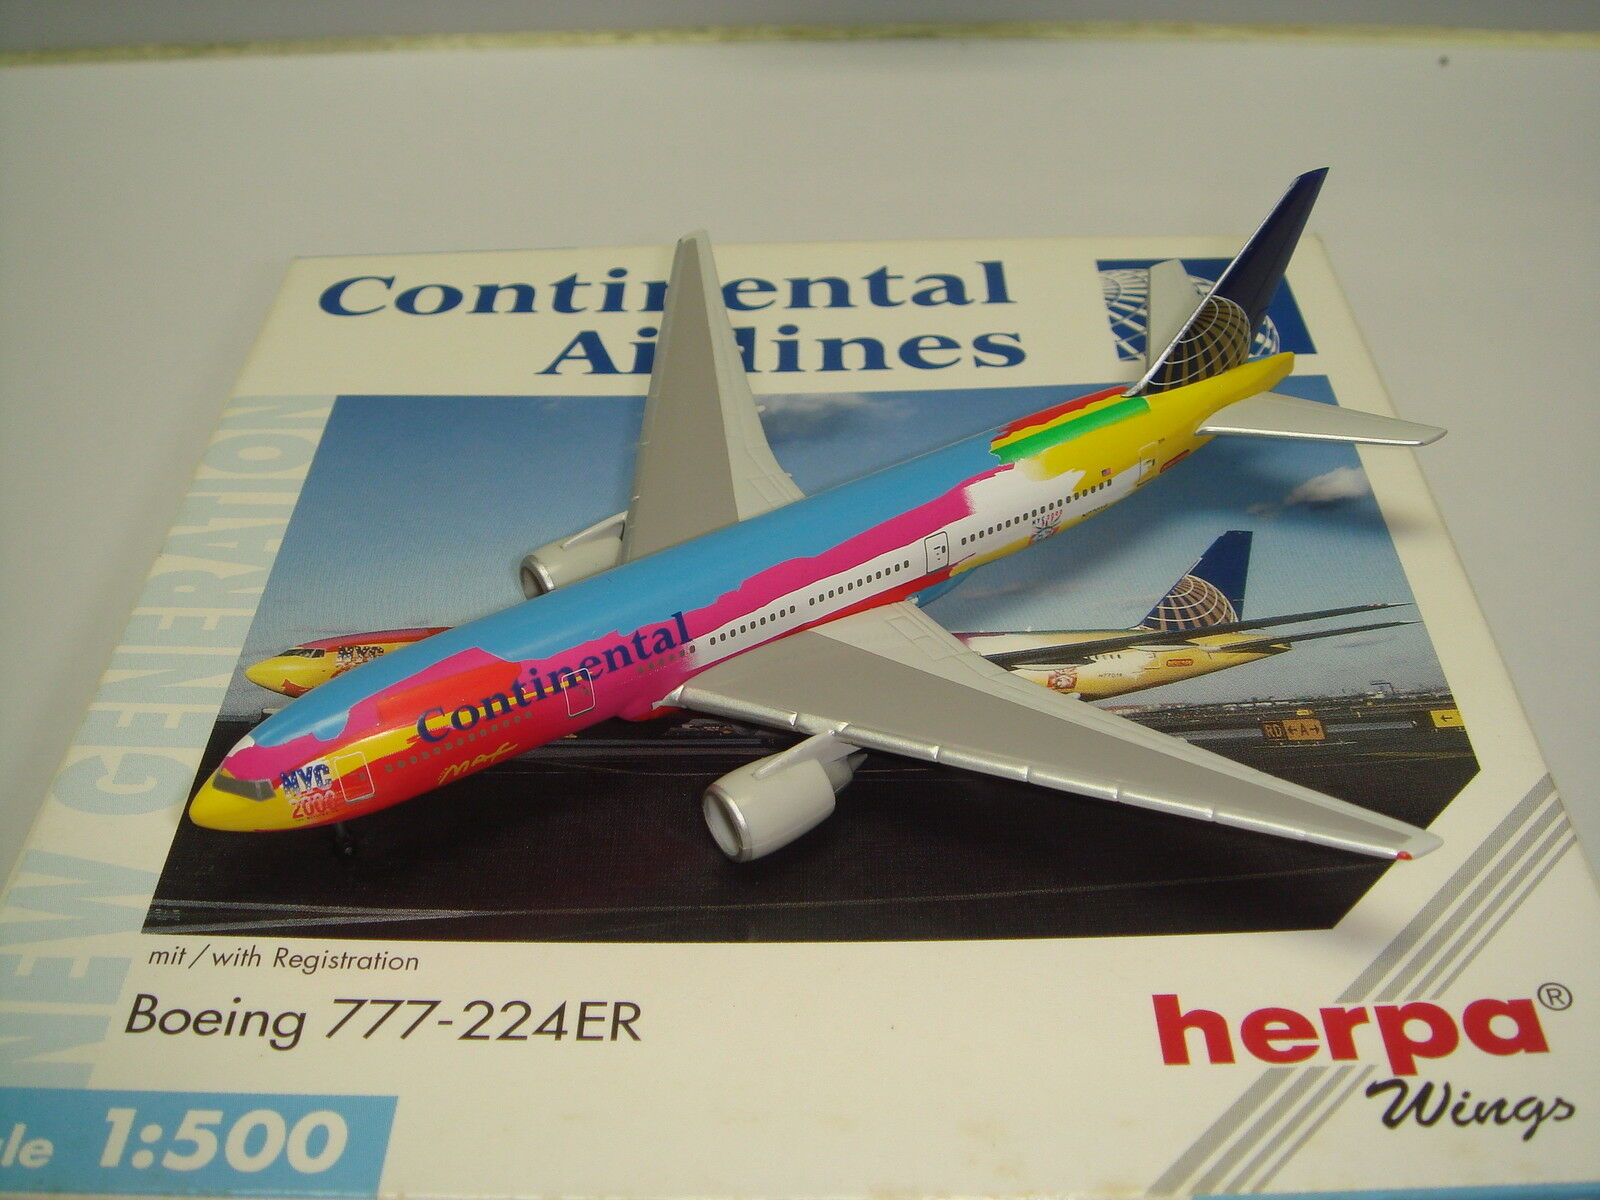 HERPA WINGS 500 Continental Airlines B777-200ER  Peter Max  NG 1 500